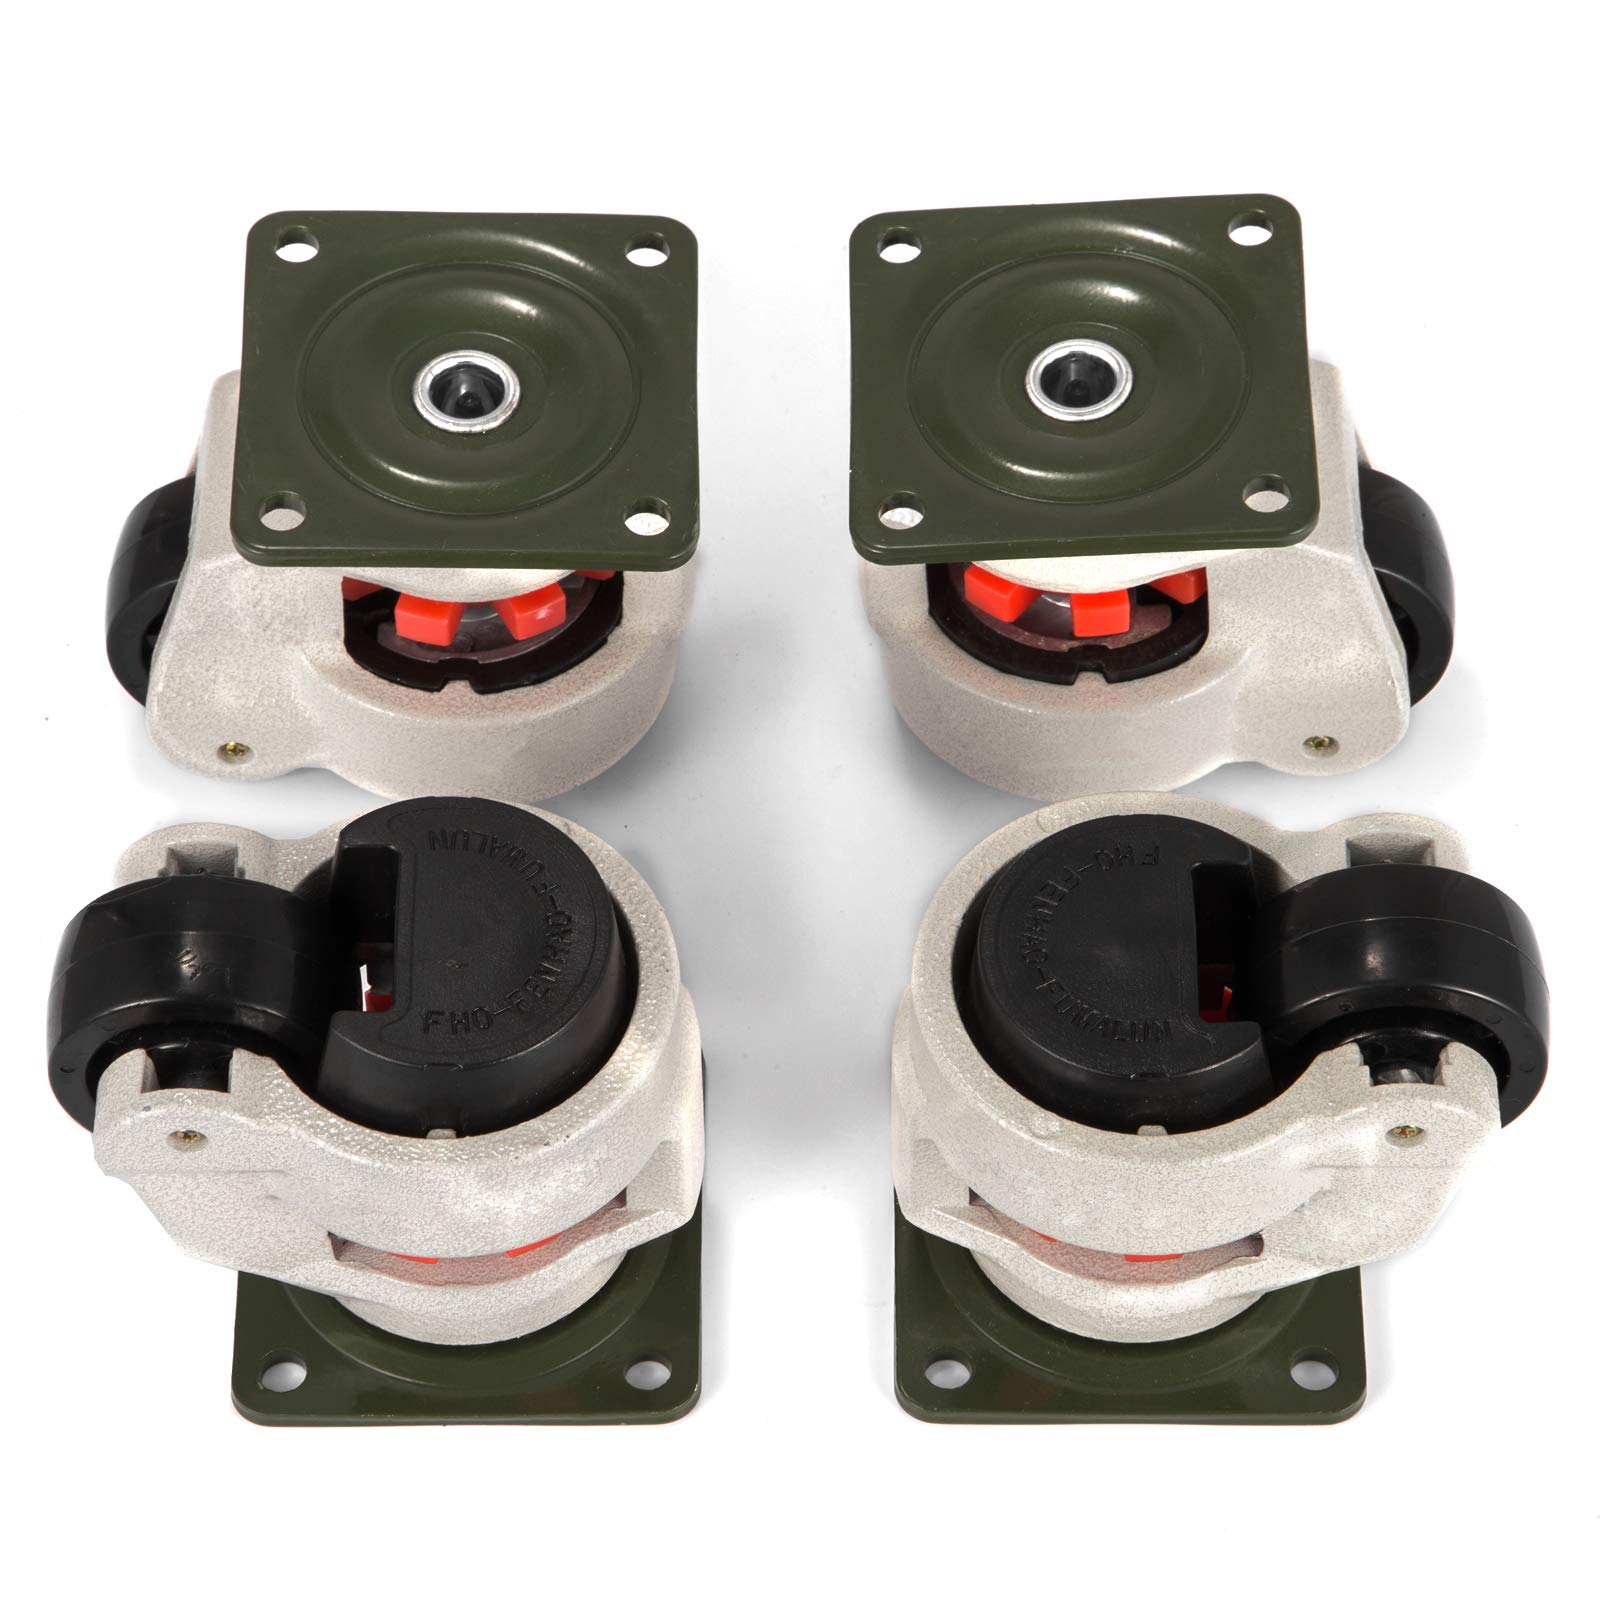 Happybuy 4 Pack Leveling Caster GD-80F Plate Mounted Footmaster Leveling Caster 1102lbs per Leveling Caster Wheels Nylon Wheel and NBR Pad (GD-80F)